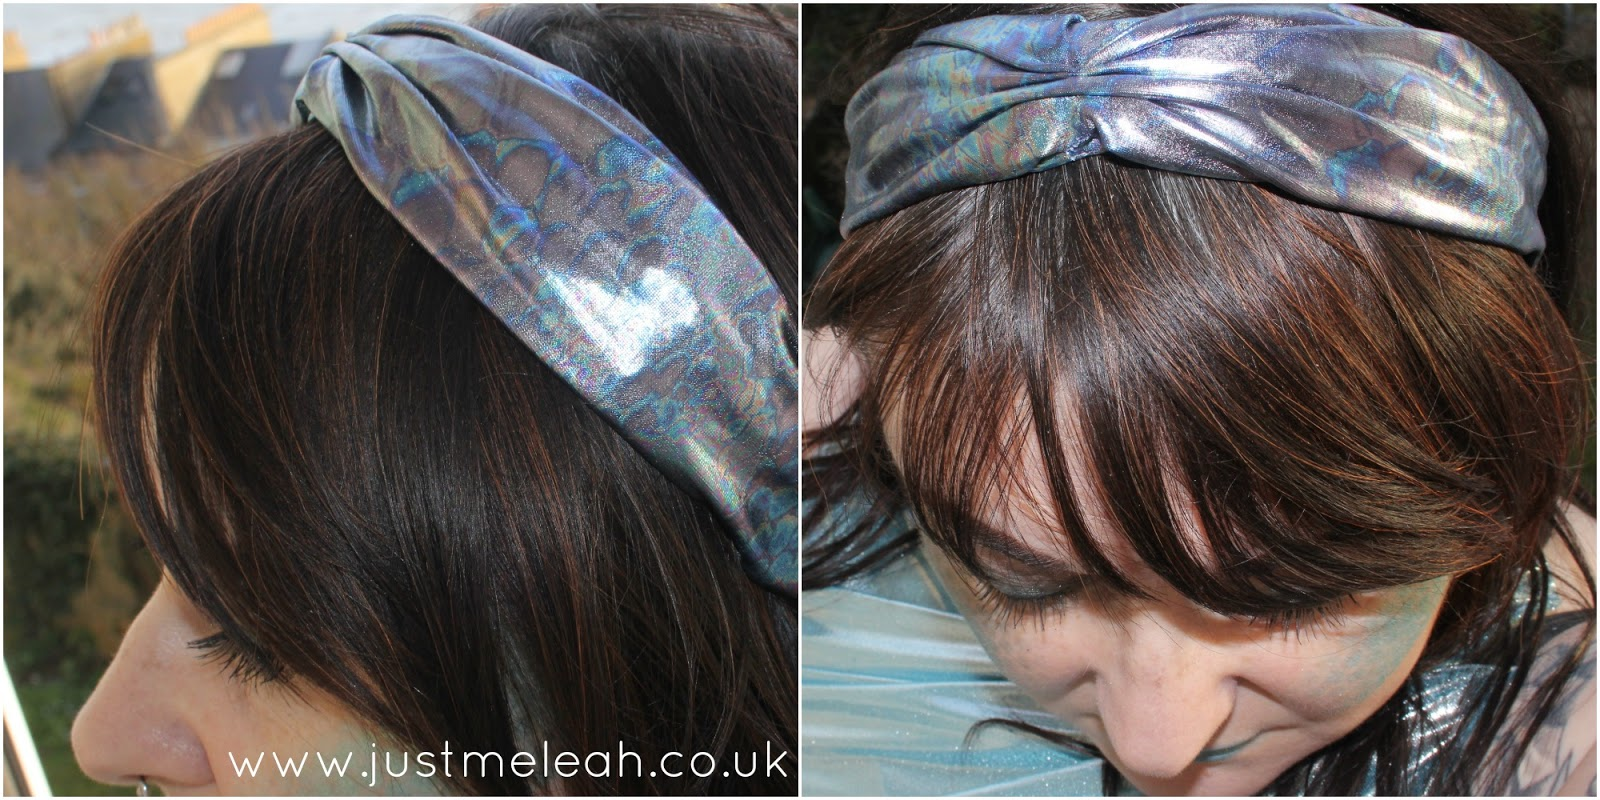 Crown & Glory metallic fish scale print turban